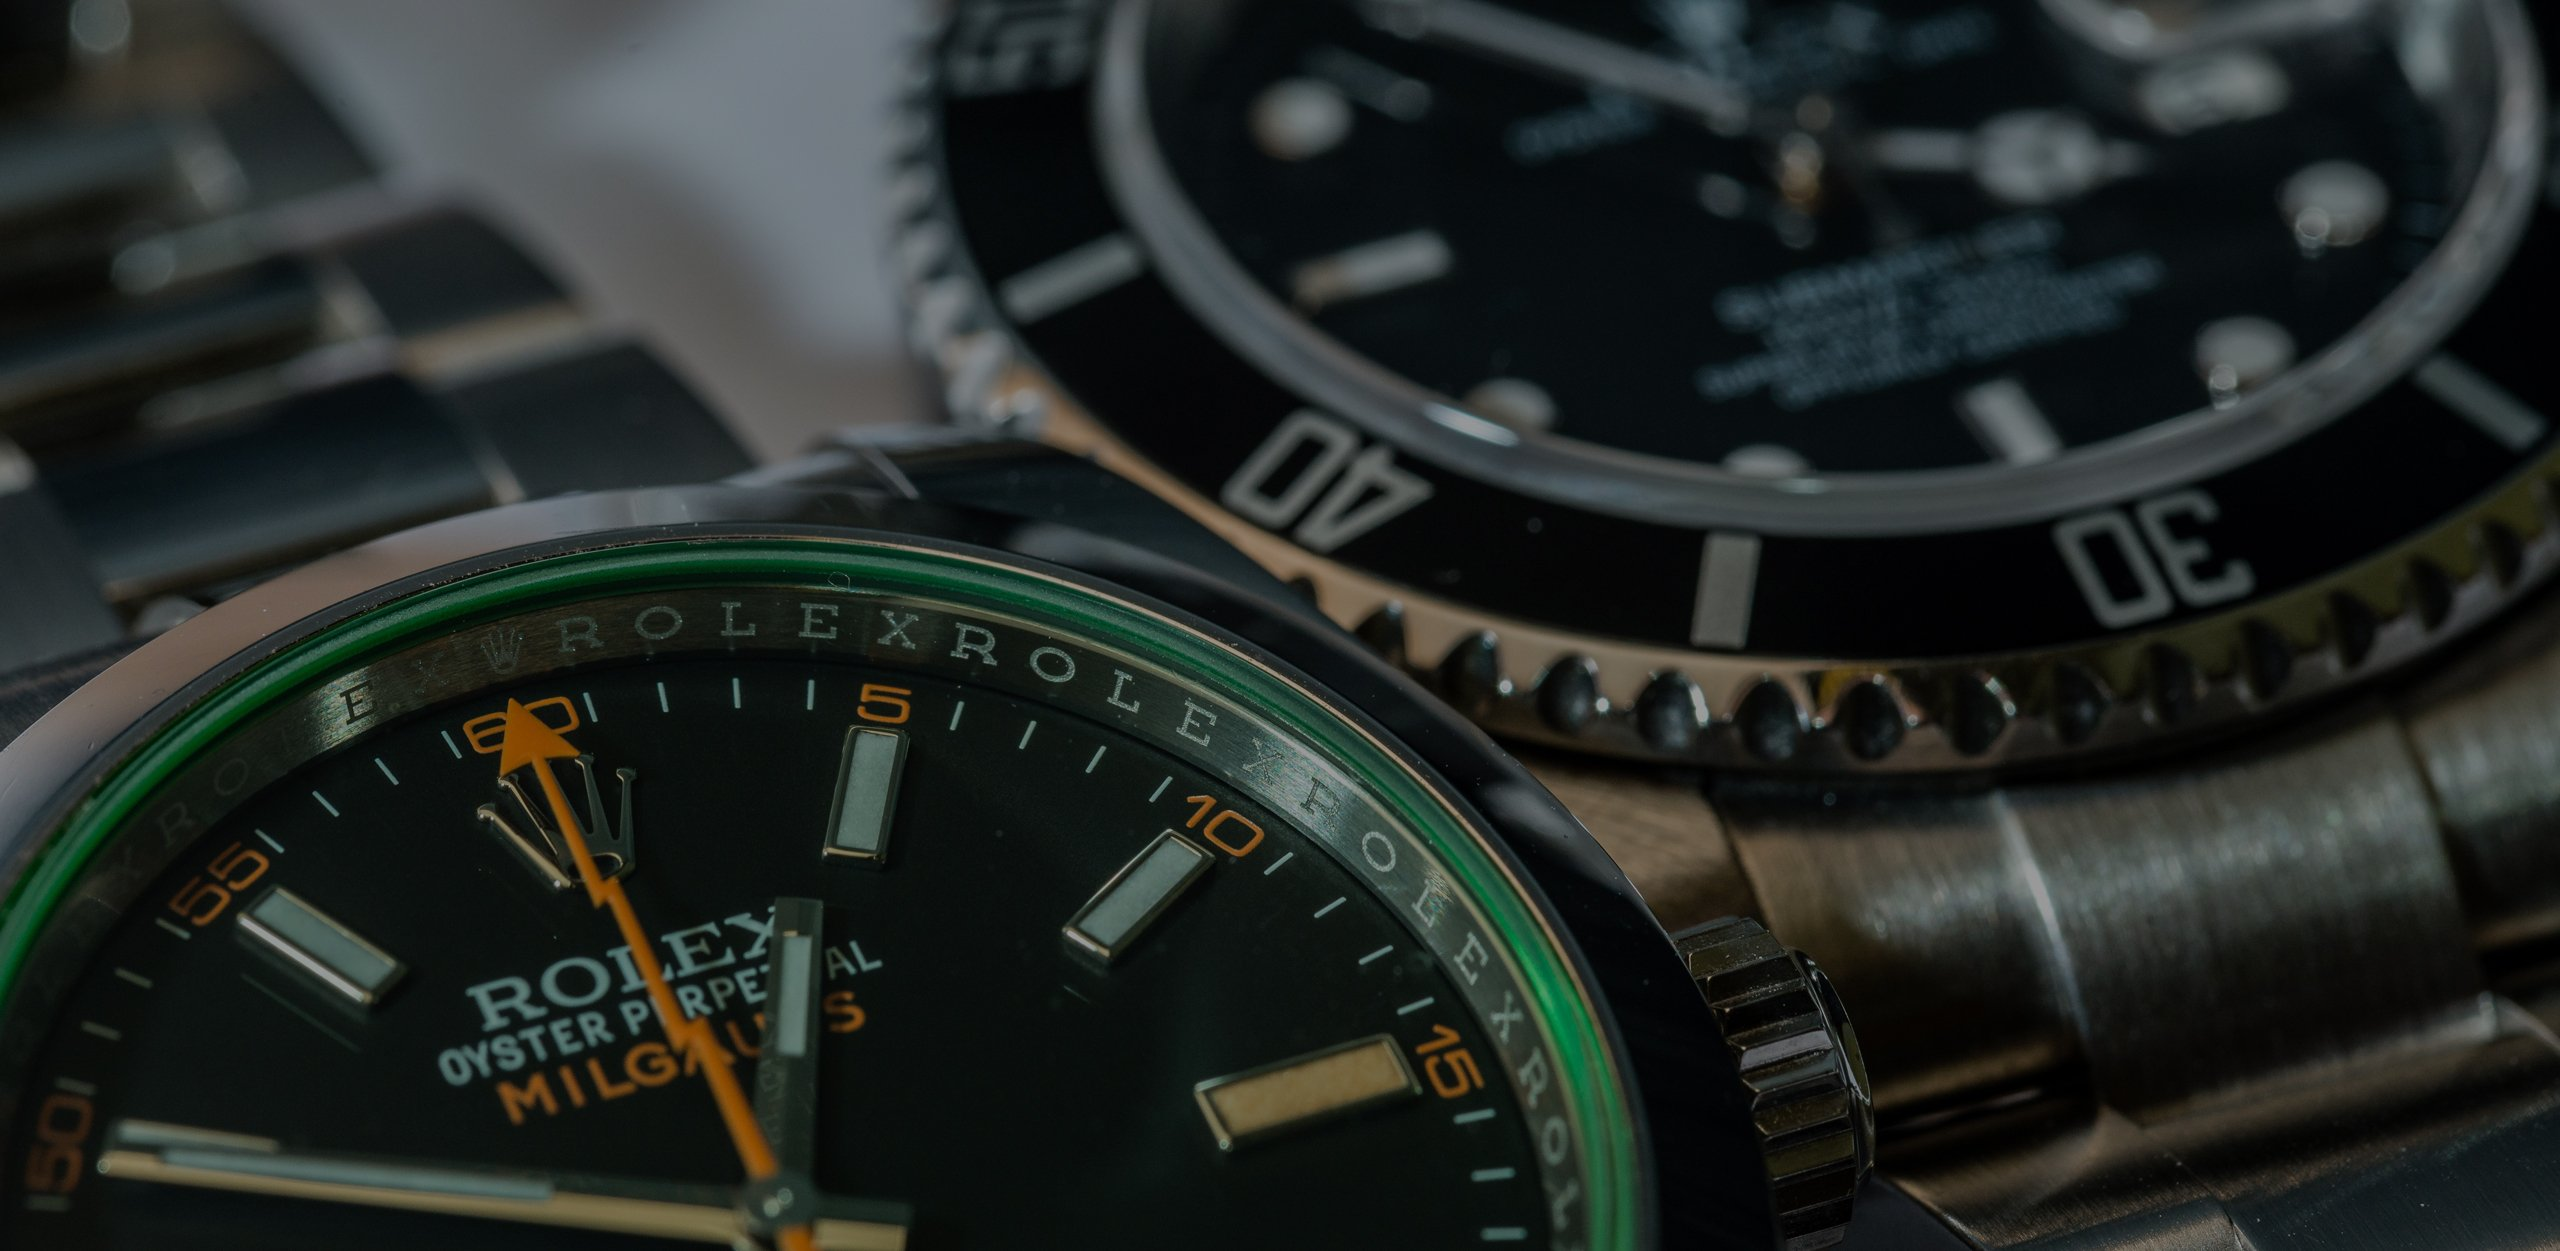 rolex-milgauss-and-a-rolex--5